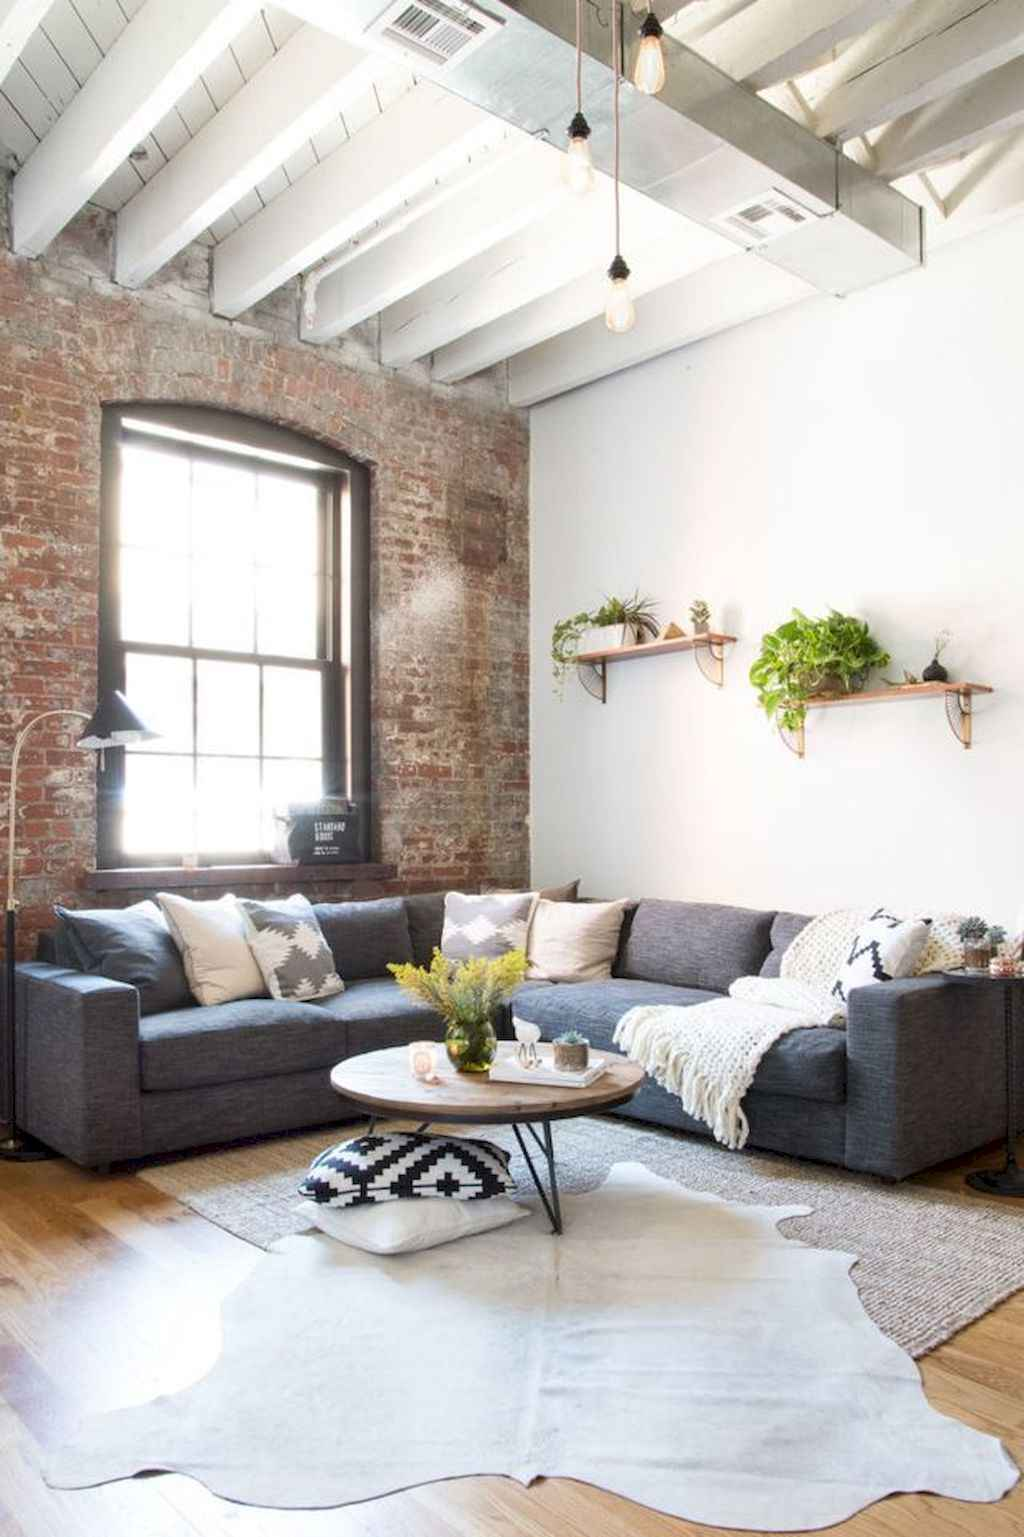 Amazing small first apartment decorating ideas (13)